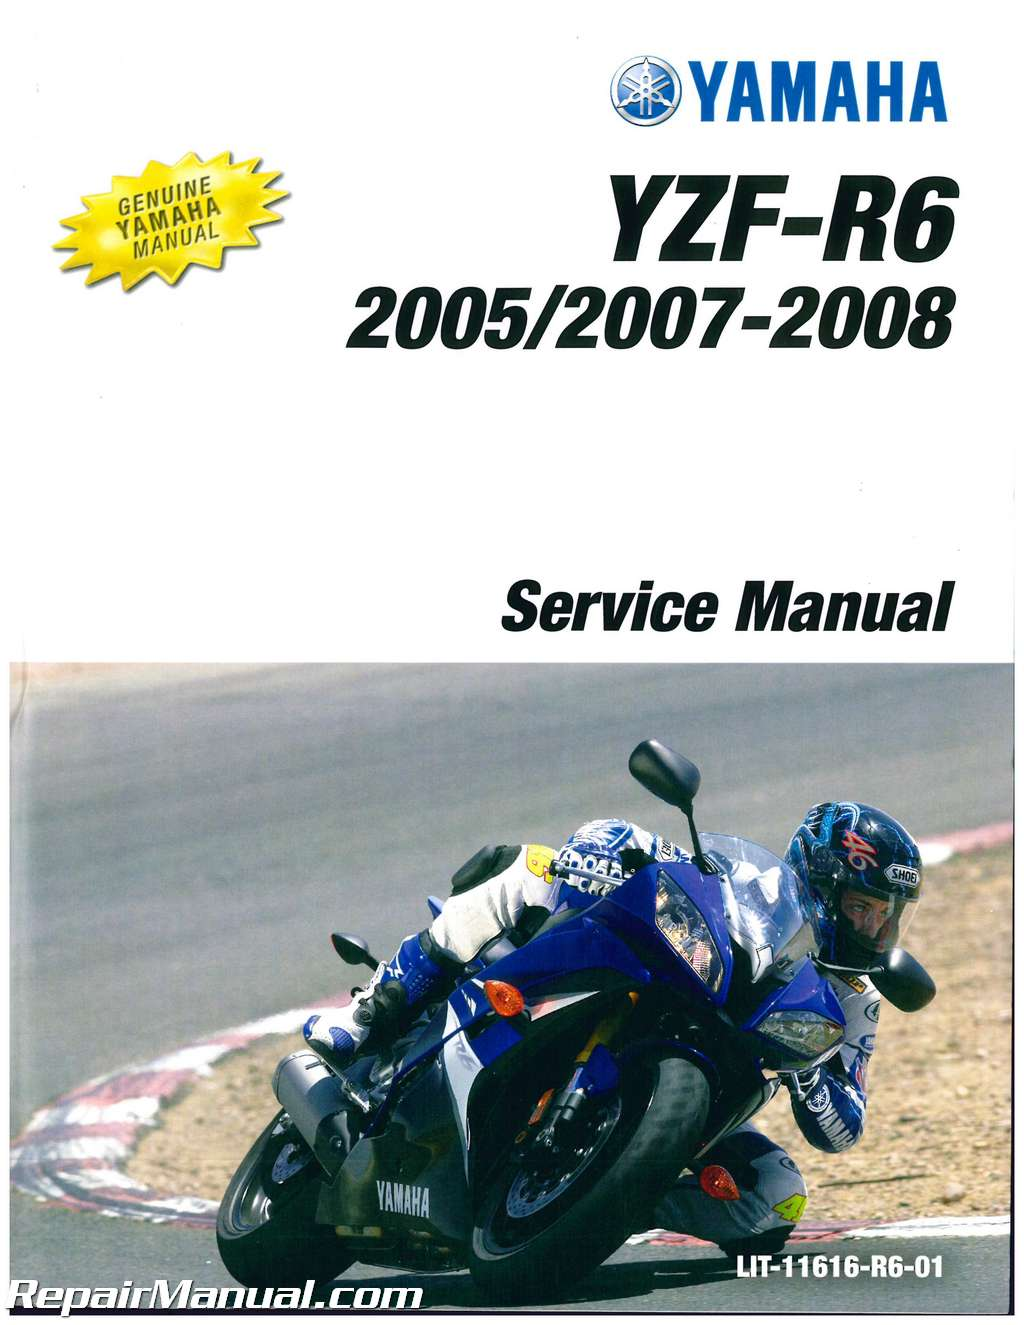 2003 2005 yamaha yzf r6 and 2006 2009 yzf r6s service manual rh repairmanual com manual yamaha r6 2008 español manual yamaha r6 2008 portugues